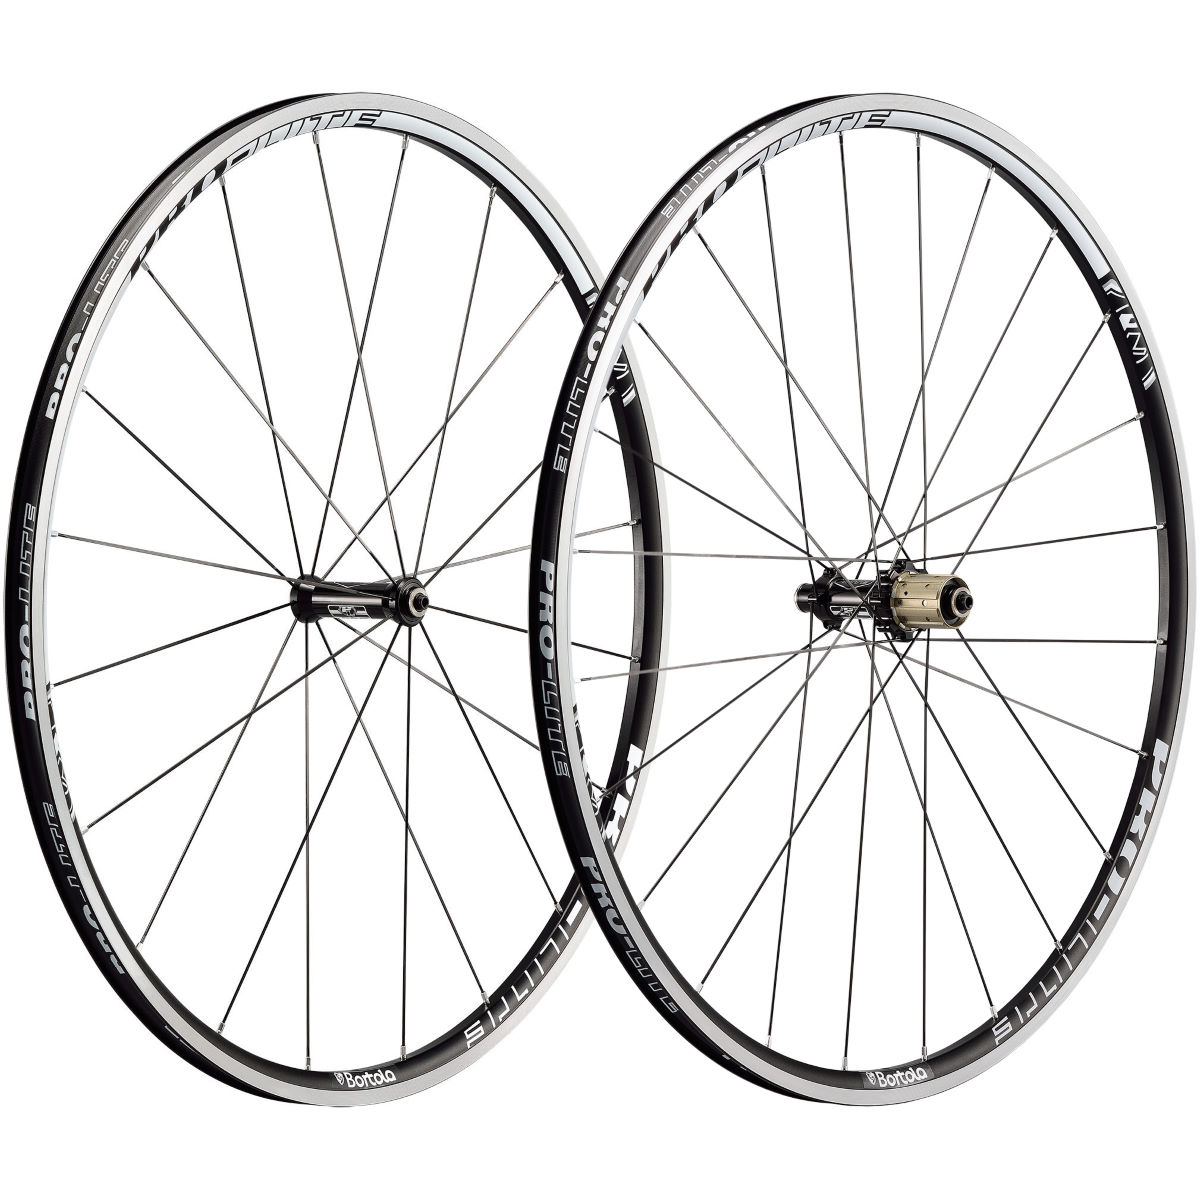 Pro Lite Bortola A21 Alloy Clincher Wheelset   Performance Wheels